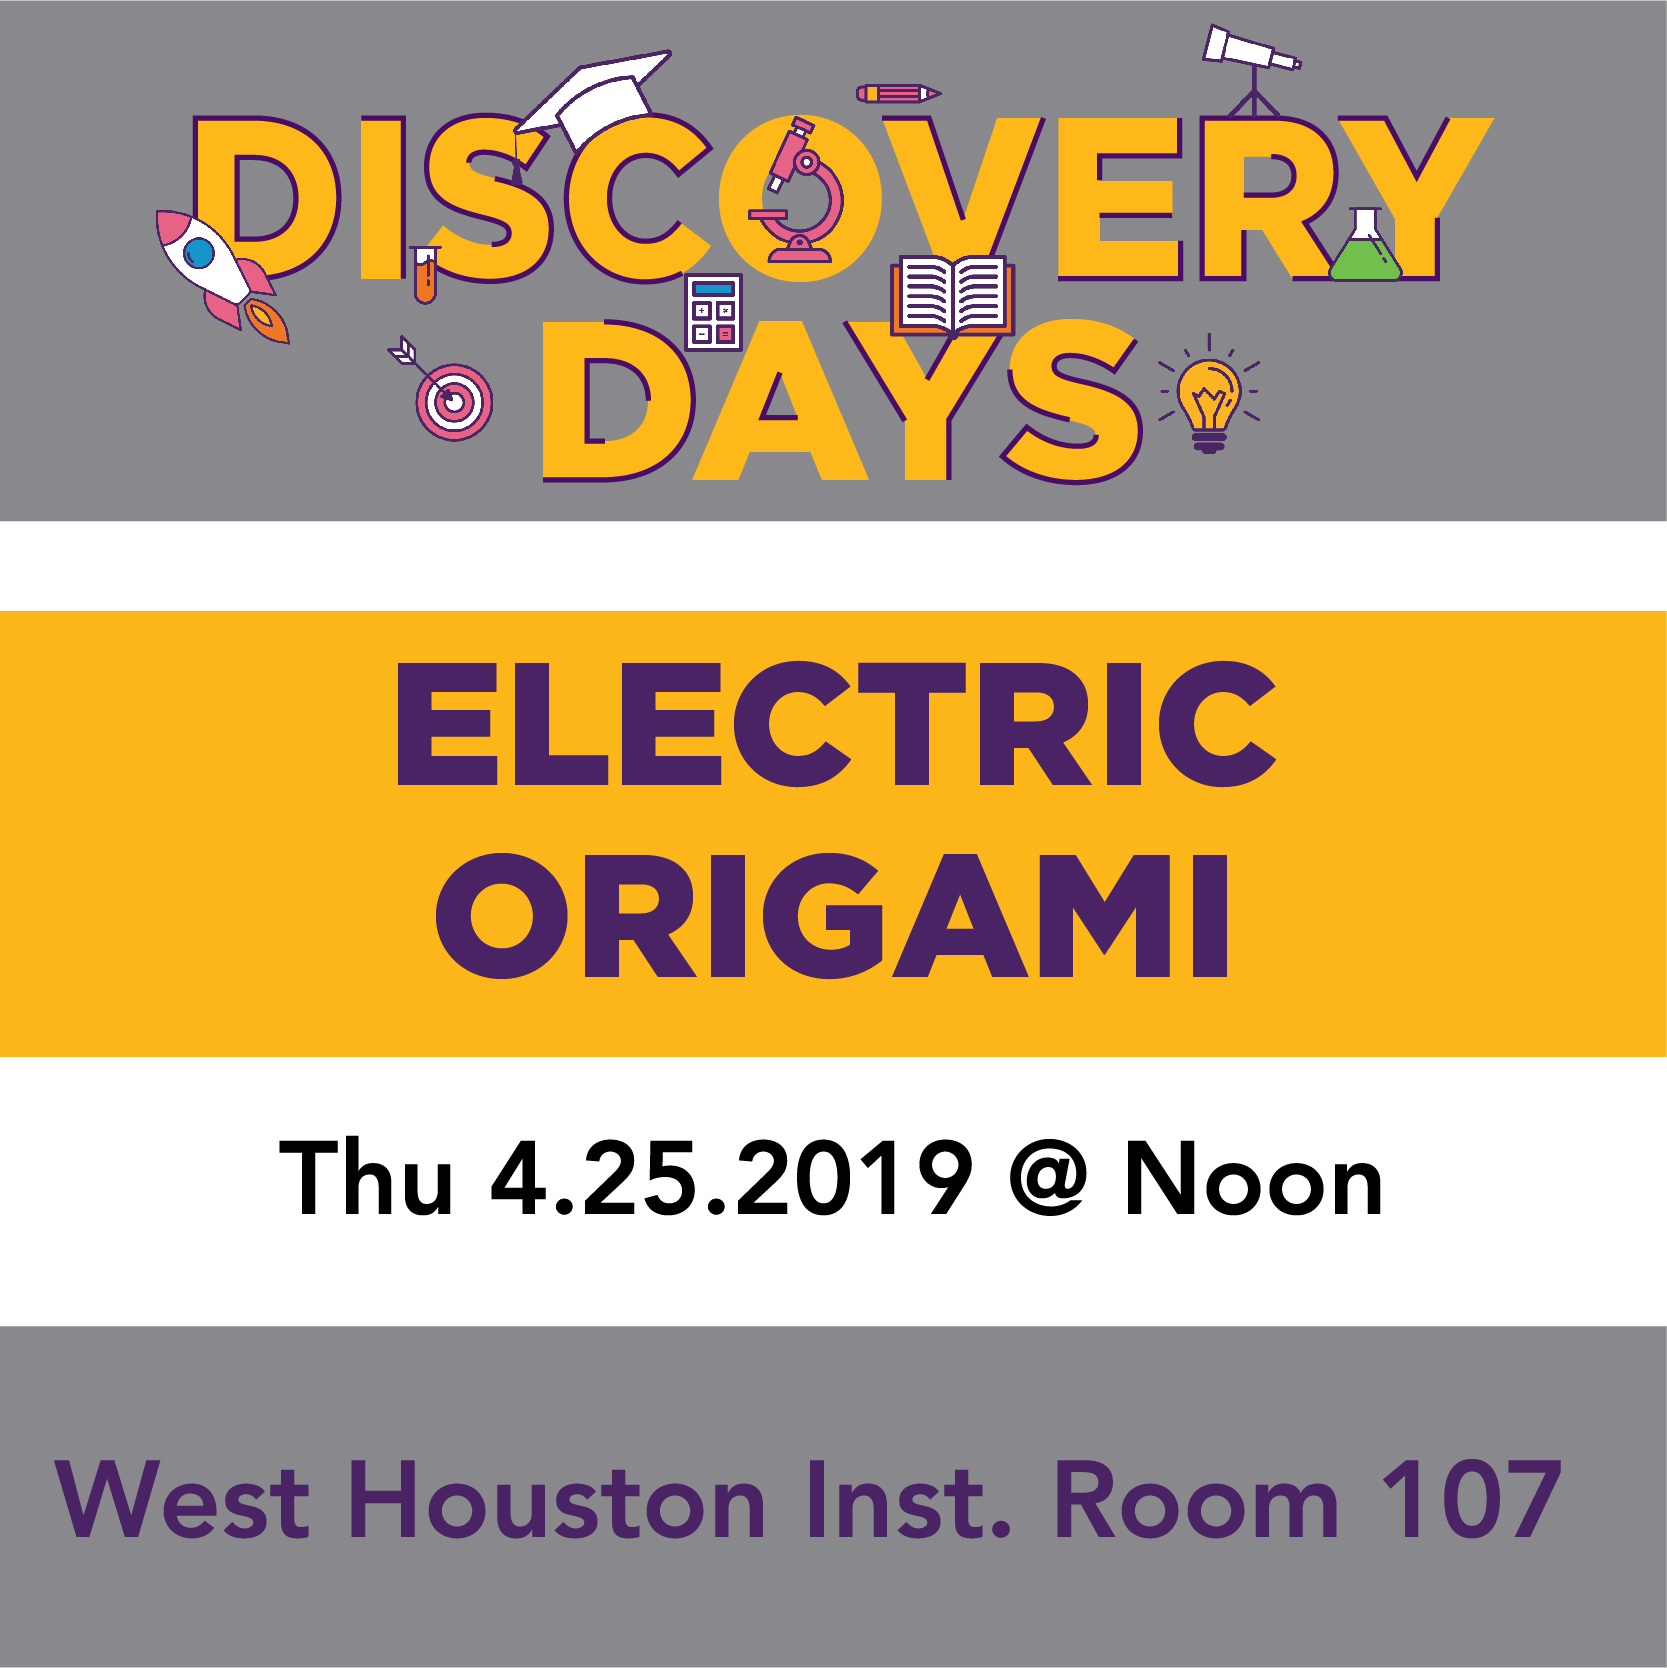 Discovery Days - Electric Origami